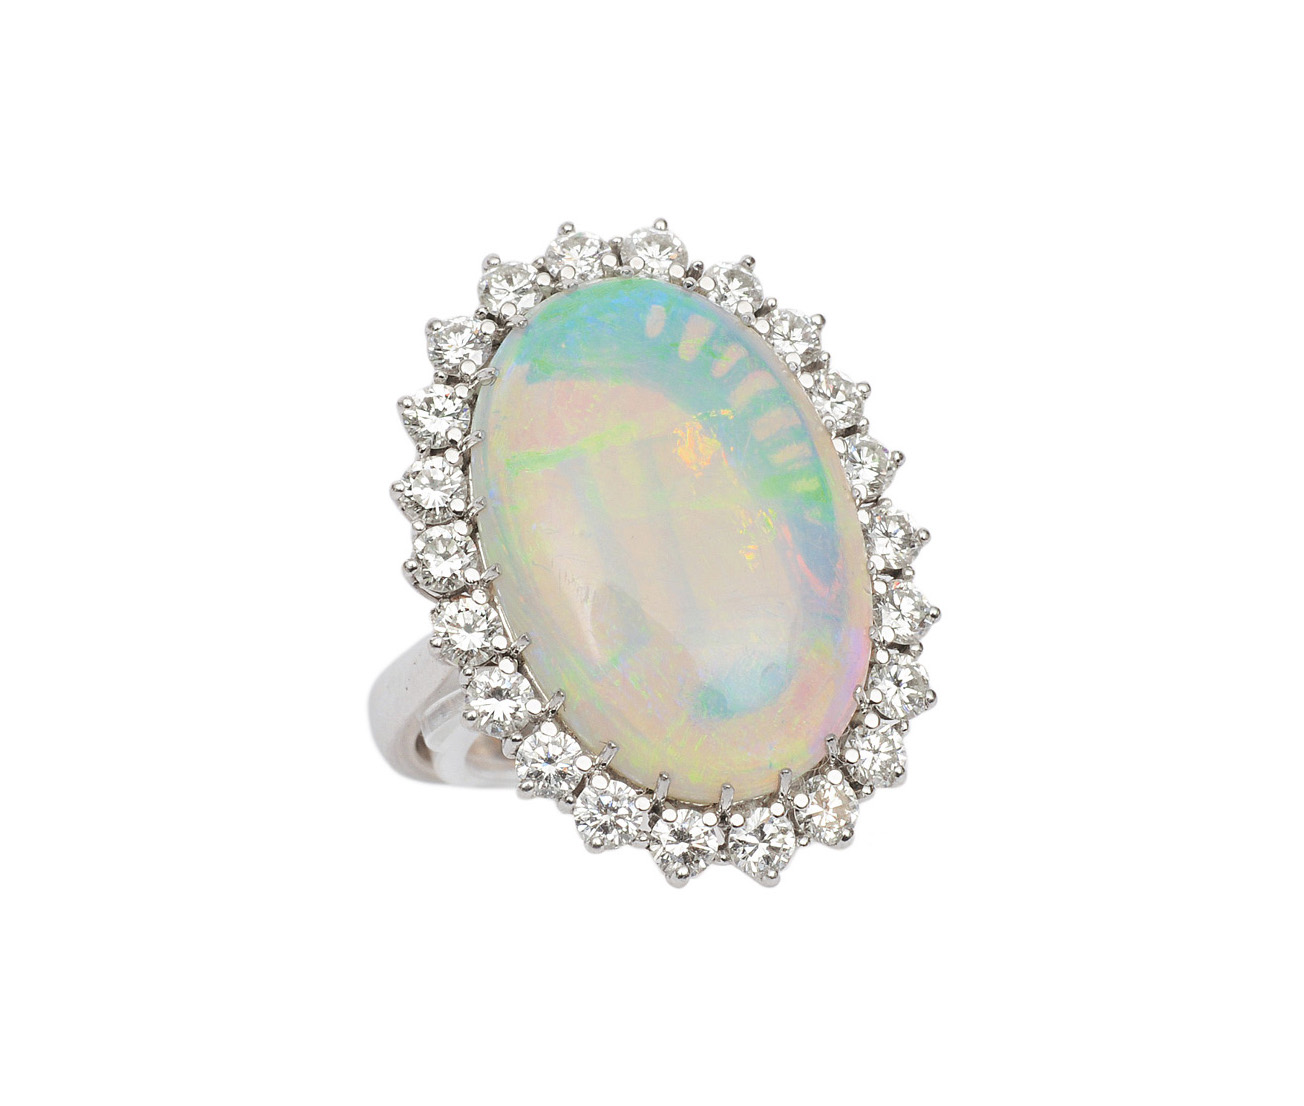 An opal diamond ring